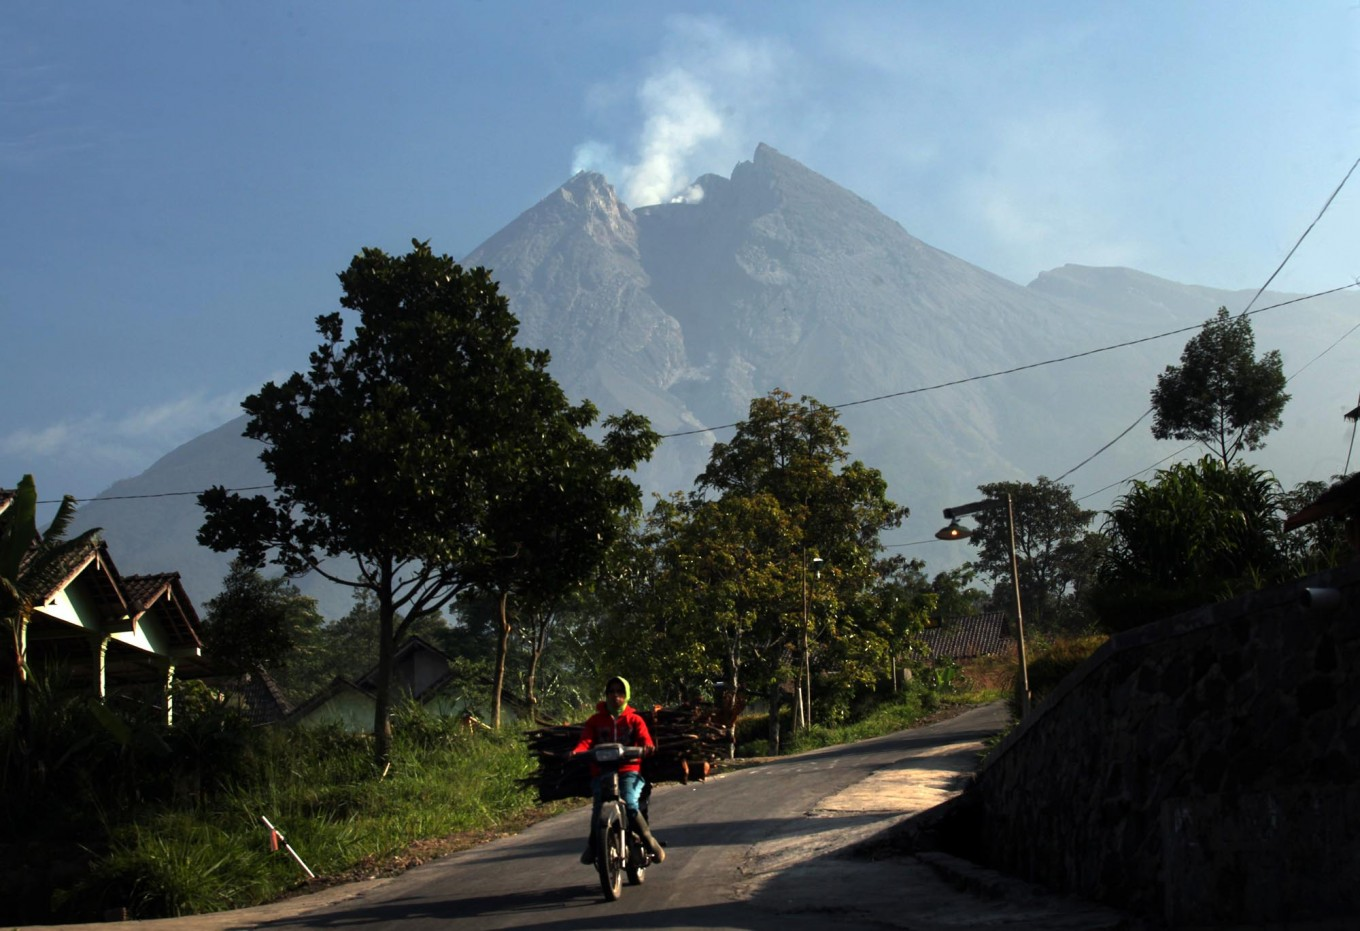 Volcanology center advises 3 km safe distance from erupting Mt. Merapi